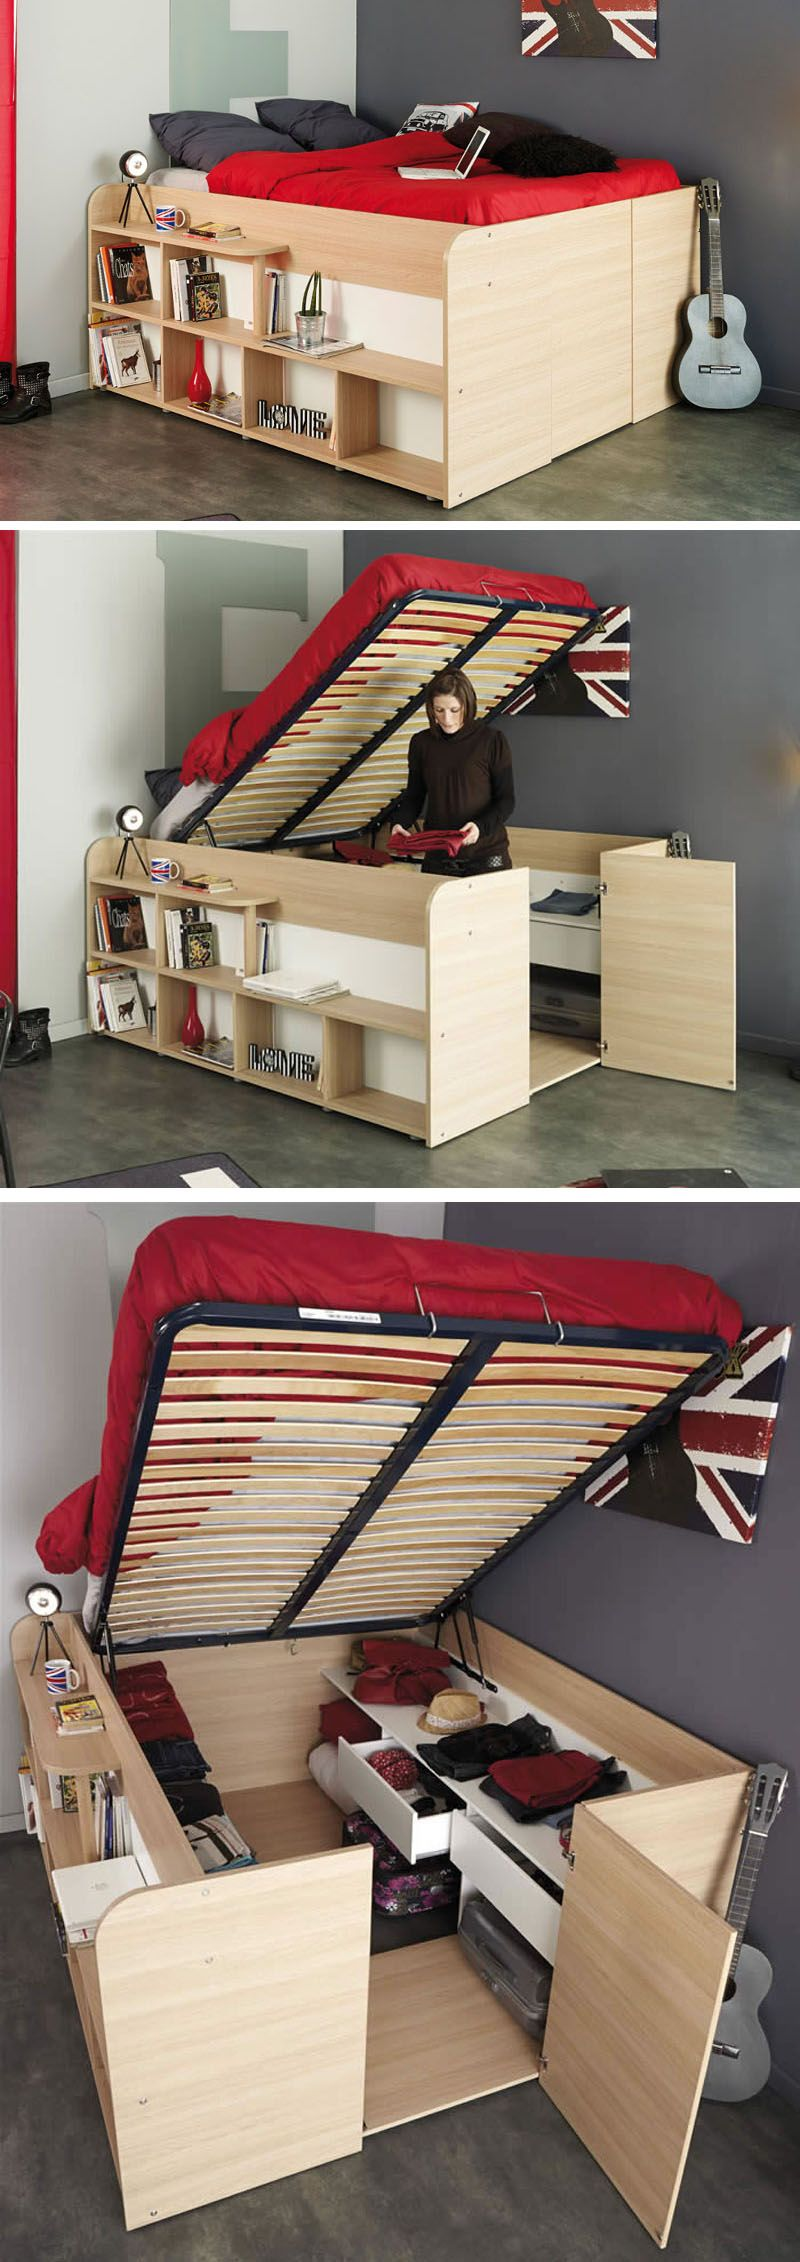 Small Space Storage Solution - This Bed Has Plenty Of Storage ...